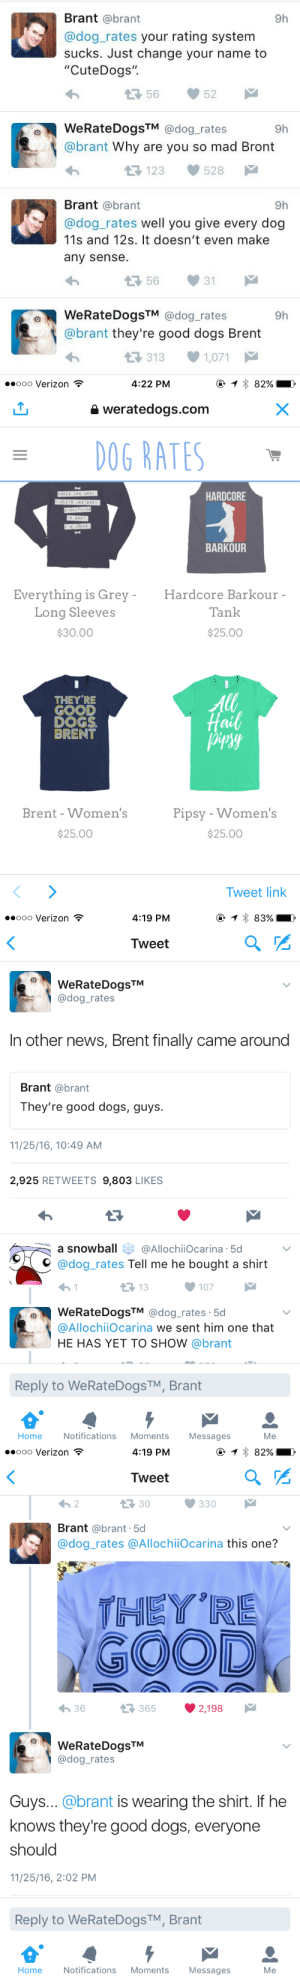 """softmouse:This is so pure: Brant @brant  @dog_rates your rating system  sucks. Just change your name to  """"CuteDogs"""".  9h  35652  WeRateDogsTM @dog_rates  @brant Why are you so mad Bront  9h  1123528  Brant @brant  @dog_rates well you give every dog  11s and 12s. It doesn't even make  any sense.  9h  WeRateDogsTM @dog_rates  @brant they're good dogs Brent  9h  3131,071   ..ooo Verizon  4:22 PM  weratedogs.com  0G RATES  HARDCORE  BARKOUR  Everything is Grey Hardcore Barkour  Tank  Long Sleeves  $30.00  $25.00  THEY'RE  GOOD  DOGS  BRENT  Hail  Brent -Women's  Pipsy - Women's  $25.00  $25.00  Tweet link   ..ooo Verizon  4:19 PM  Tweet  WeRateDogsTM  C@dog_rates  In other news, Brent finally came around  Brant @brant  They're good dogs, guys  11/25/16, 10:49 AM  2,925 RETWEETS 9,803 LIKES  a snowball@AllochiiOcarina 5d  C. @dog-rates Tell me he bought a shirt  13  107  WeRateDogsTM @dog_rates .5d  @AllochiiOcarina we sent him one that  HE HAS YET TO SHOW @brant  Reply to WeRateDogsTM, Brant  Home  Notifications Moments  Messages  Me   ooo Verizon  4:19 PM  Tweet  3 30  Brant @brant.5d  @dog_rates @AllochiiOcarina this one?  THEY RE  GOOD  36  3652,198  WeRateDogsTM  adog_rates  Guys... @brant is wearing the shirt. If he  knows they're good dogs, everyone  should  11/25/16, 2:02 PM  Reply to WeRateDogs TM, Brant  Home  Notifications Moments Messages  Me softmouse:This is so pure"""